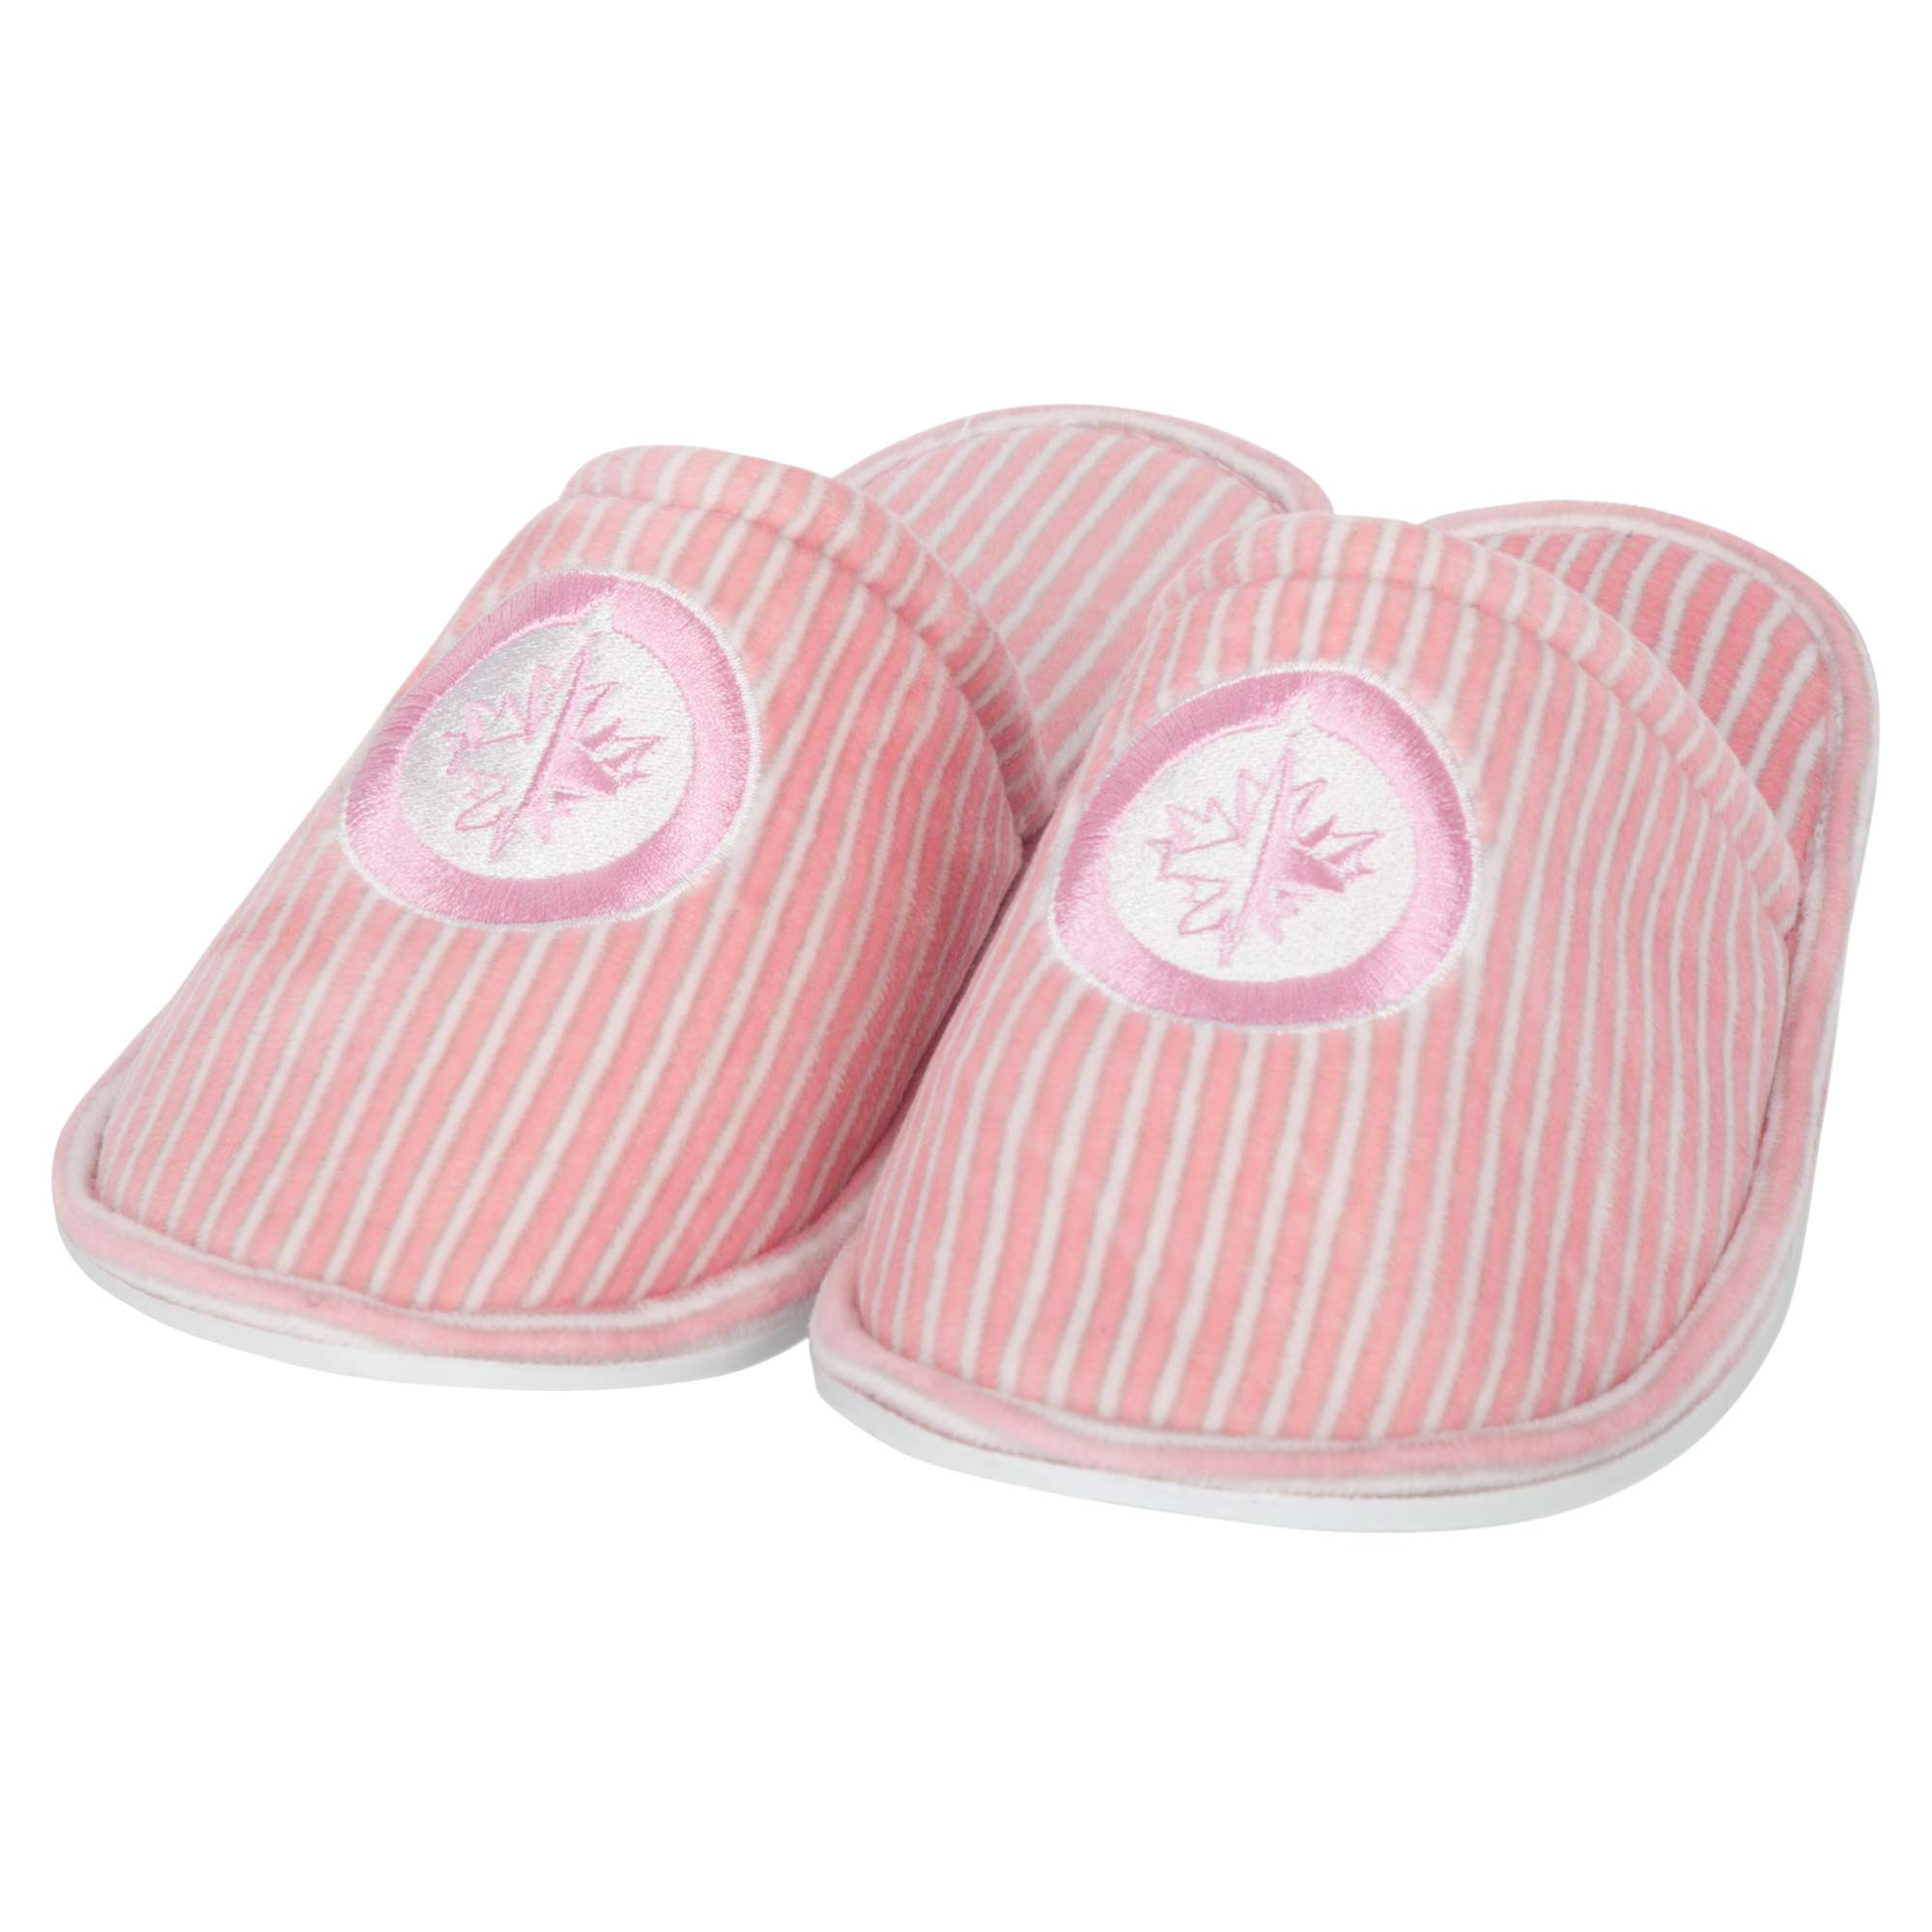 Winnipeg Jets Women's Slide Slipper - Pink